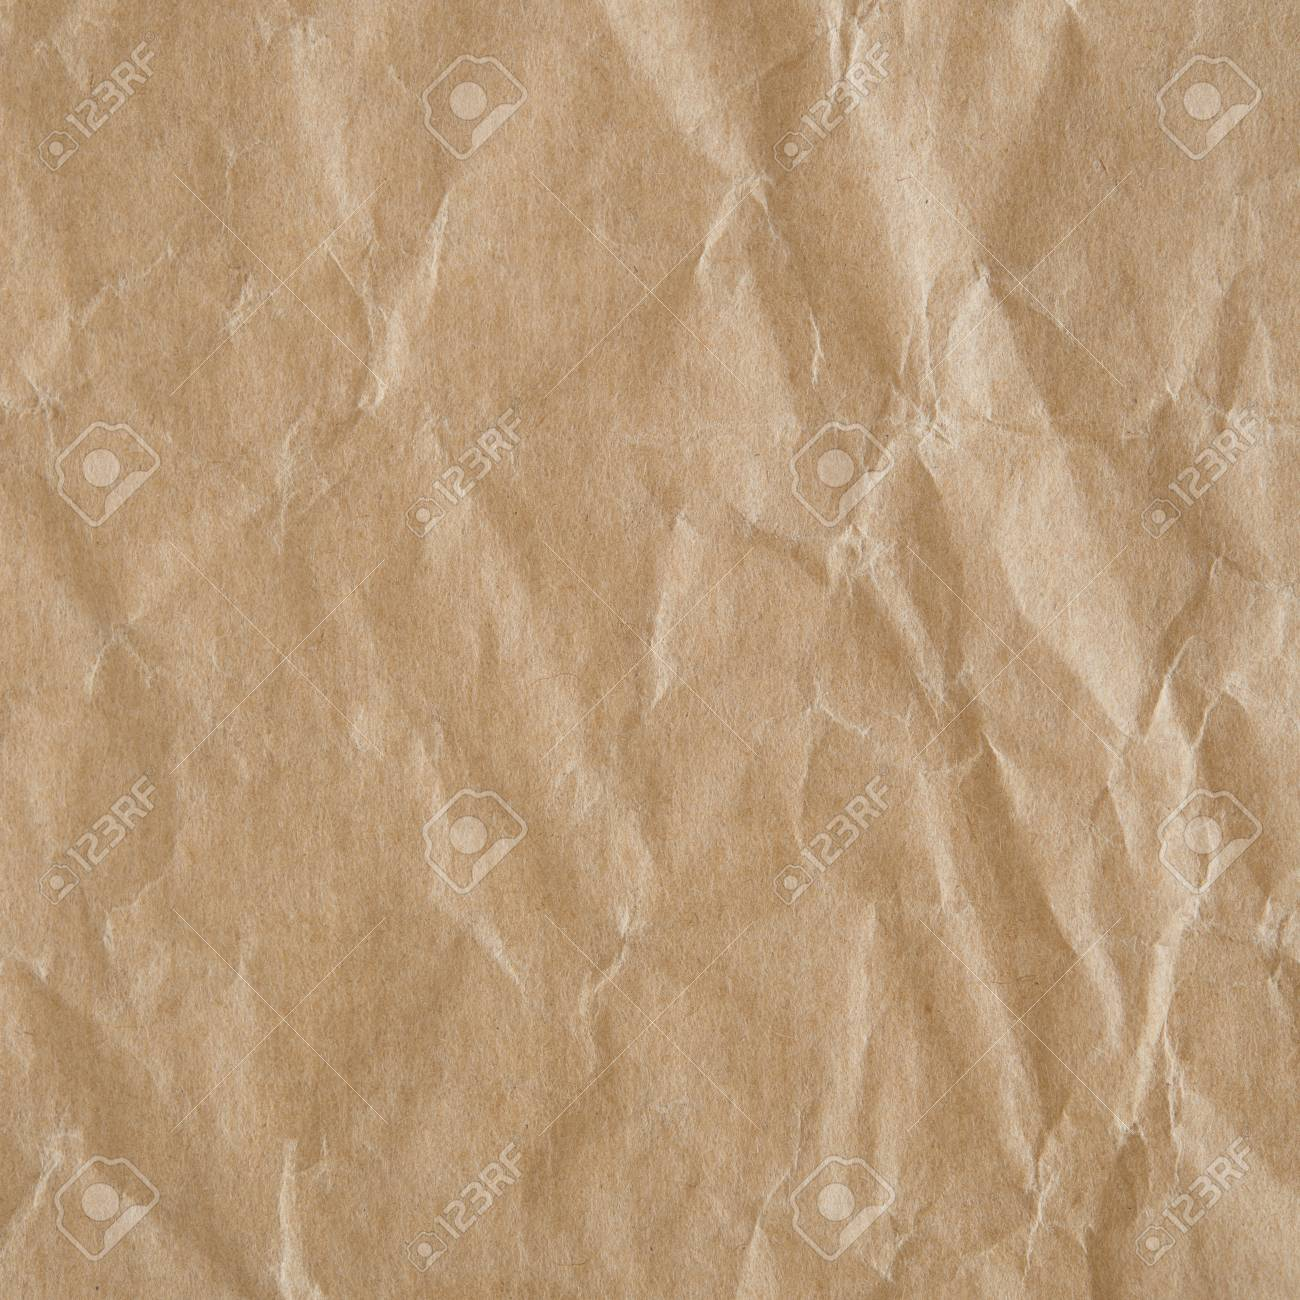 Crumpled eco paper background - 32132831